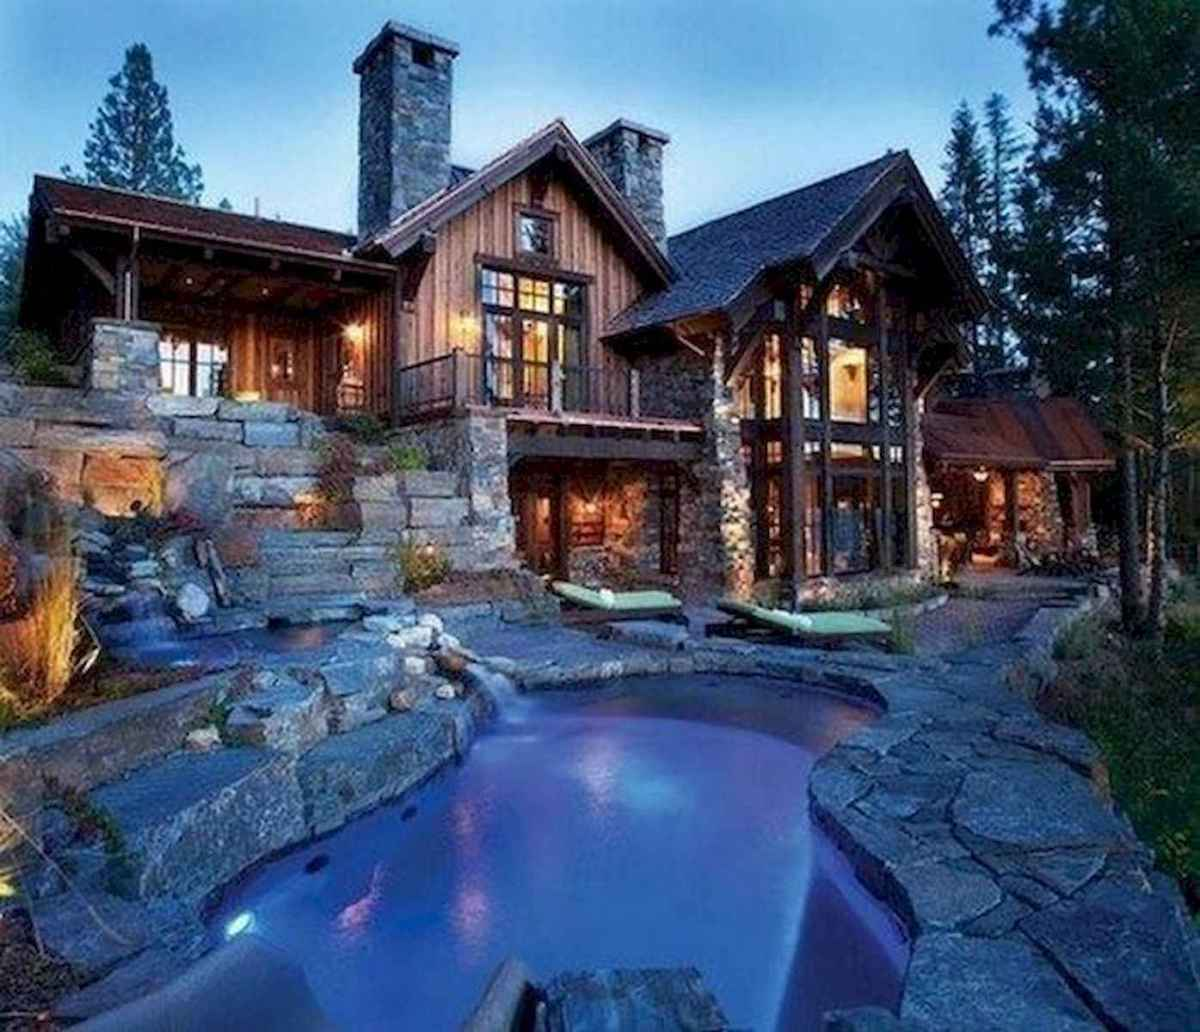 50 Best Log Cabin Homes Modern Design Ideas (21)